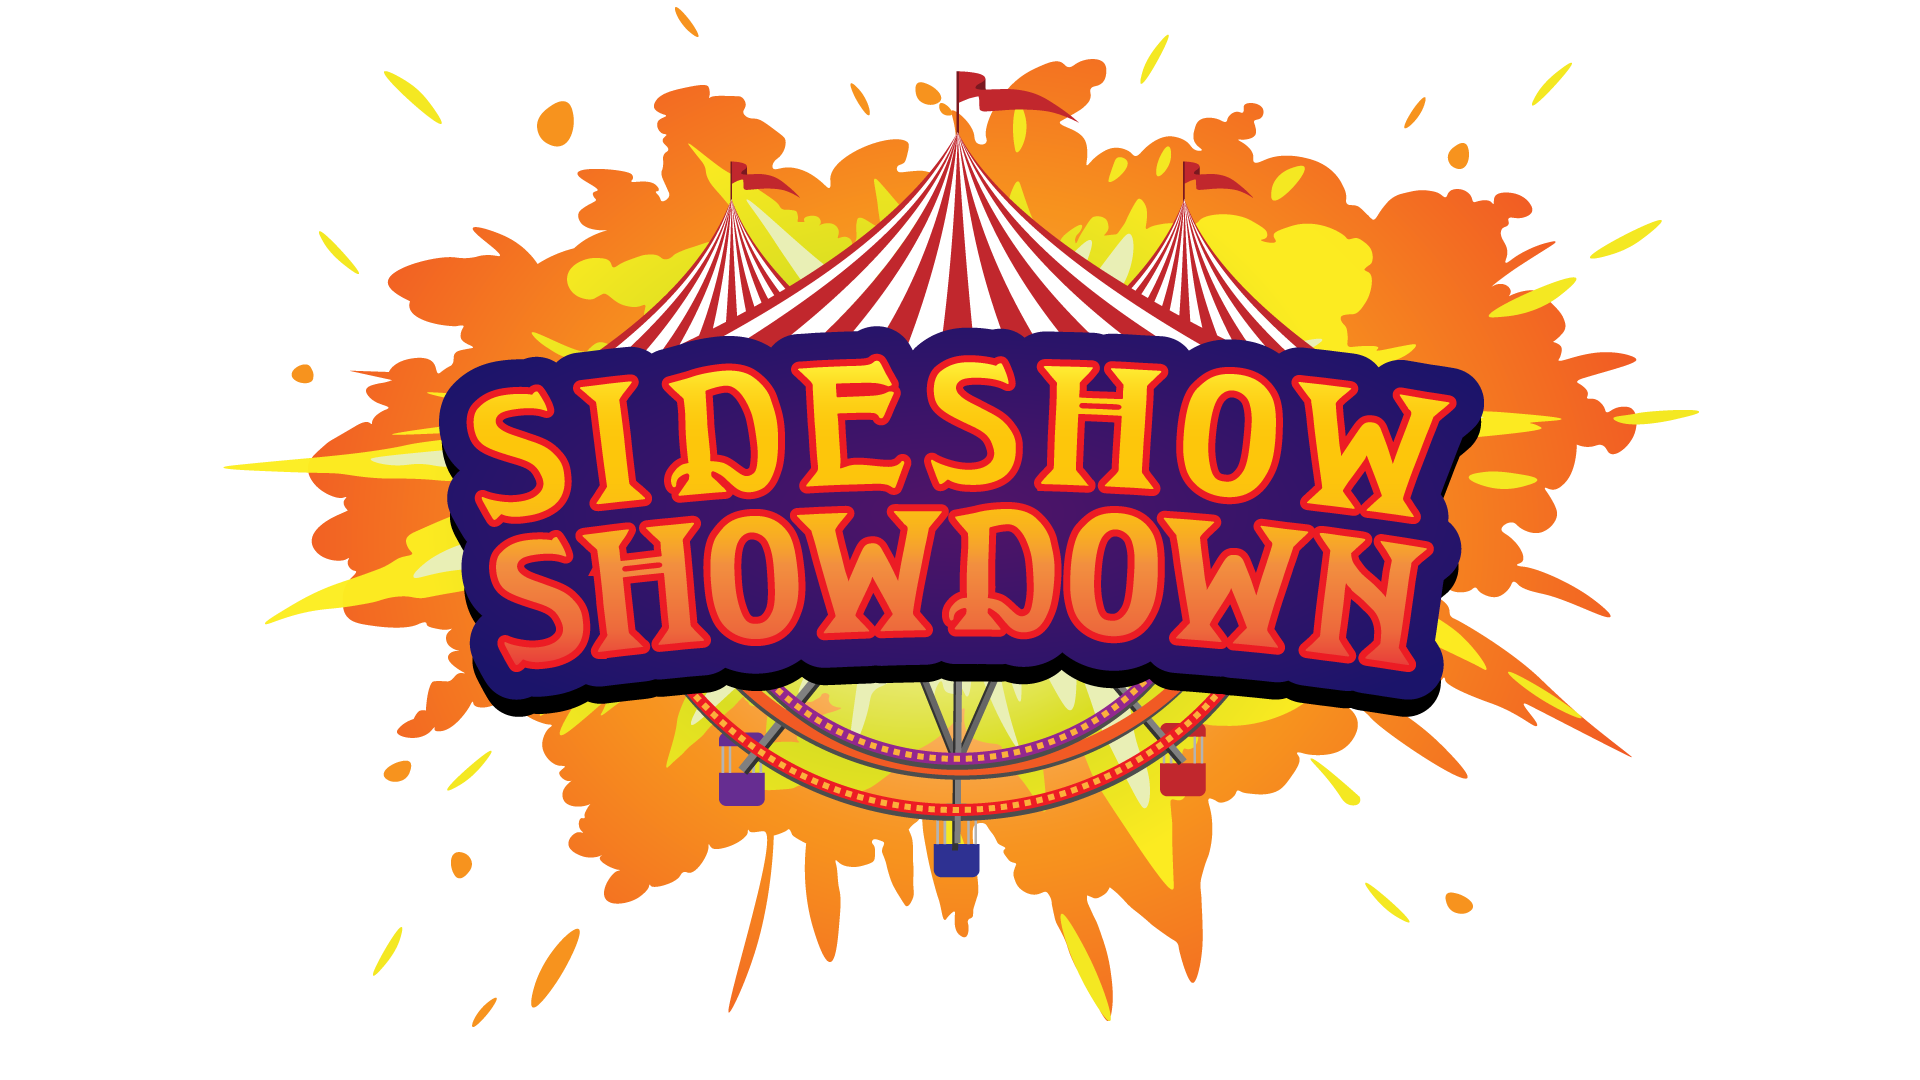 Sideshow Showdown